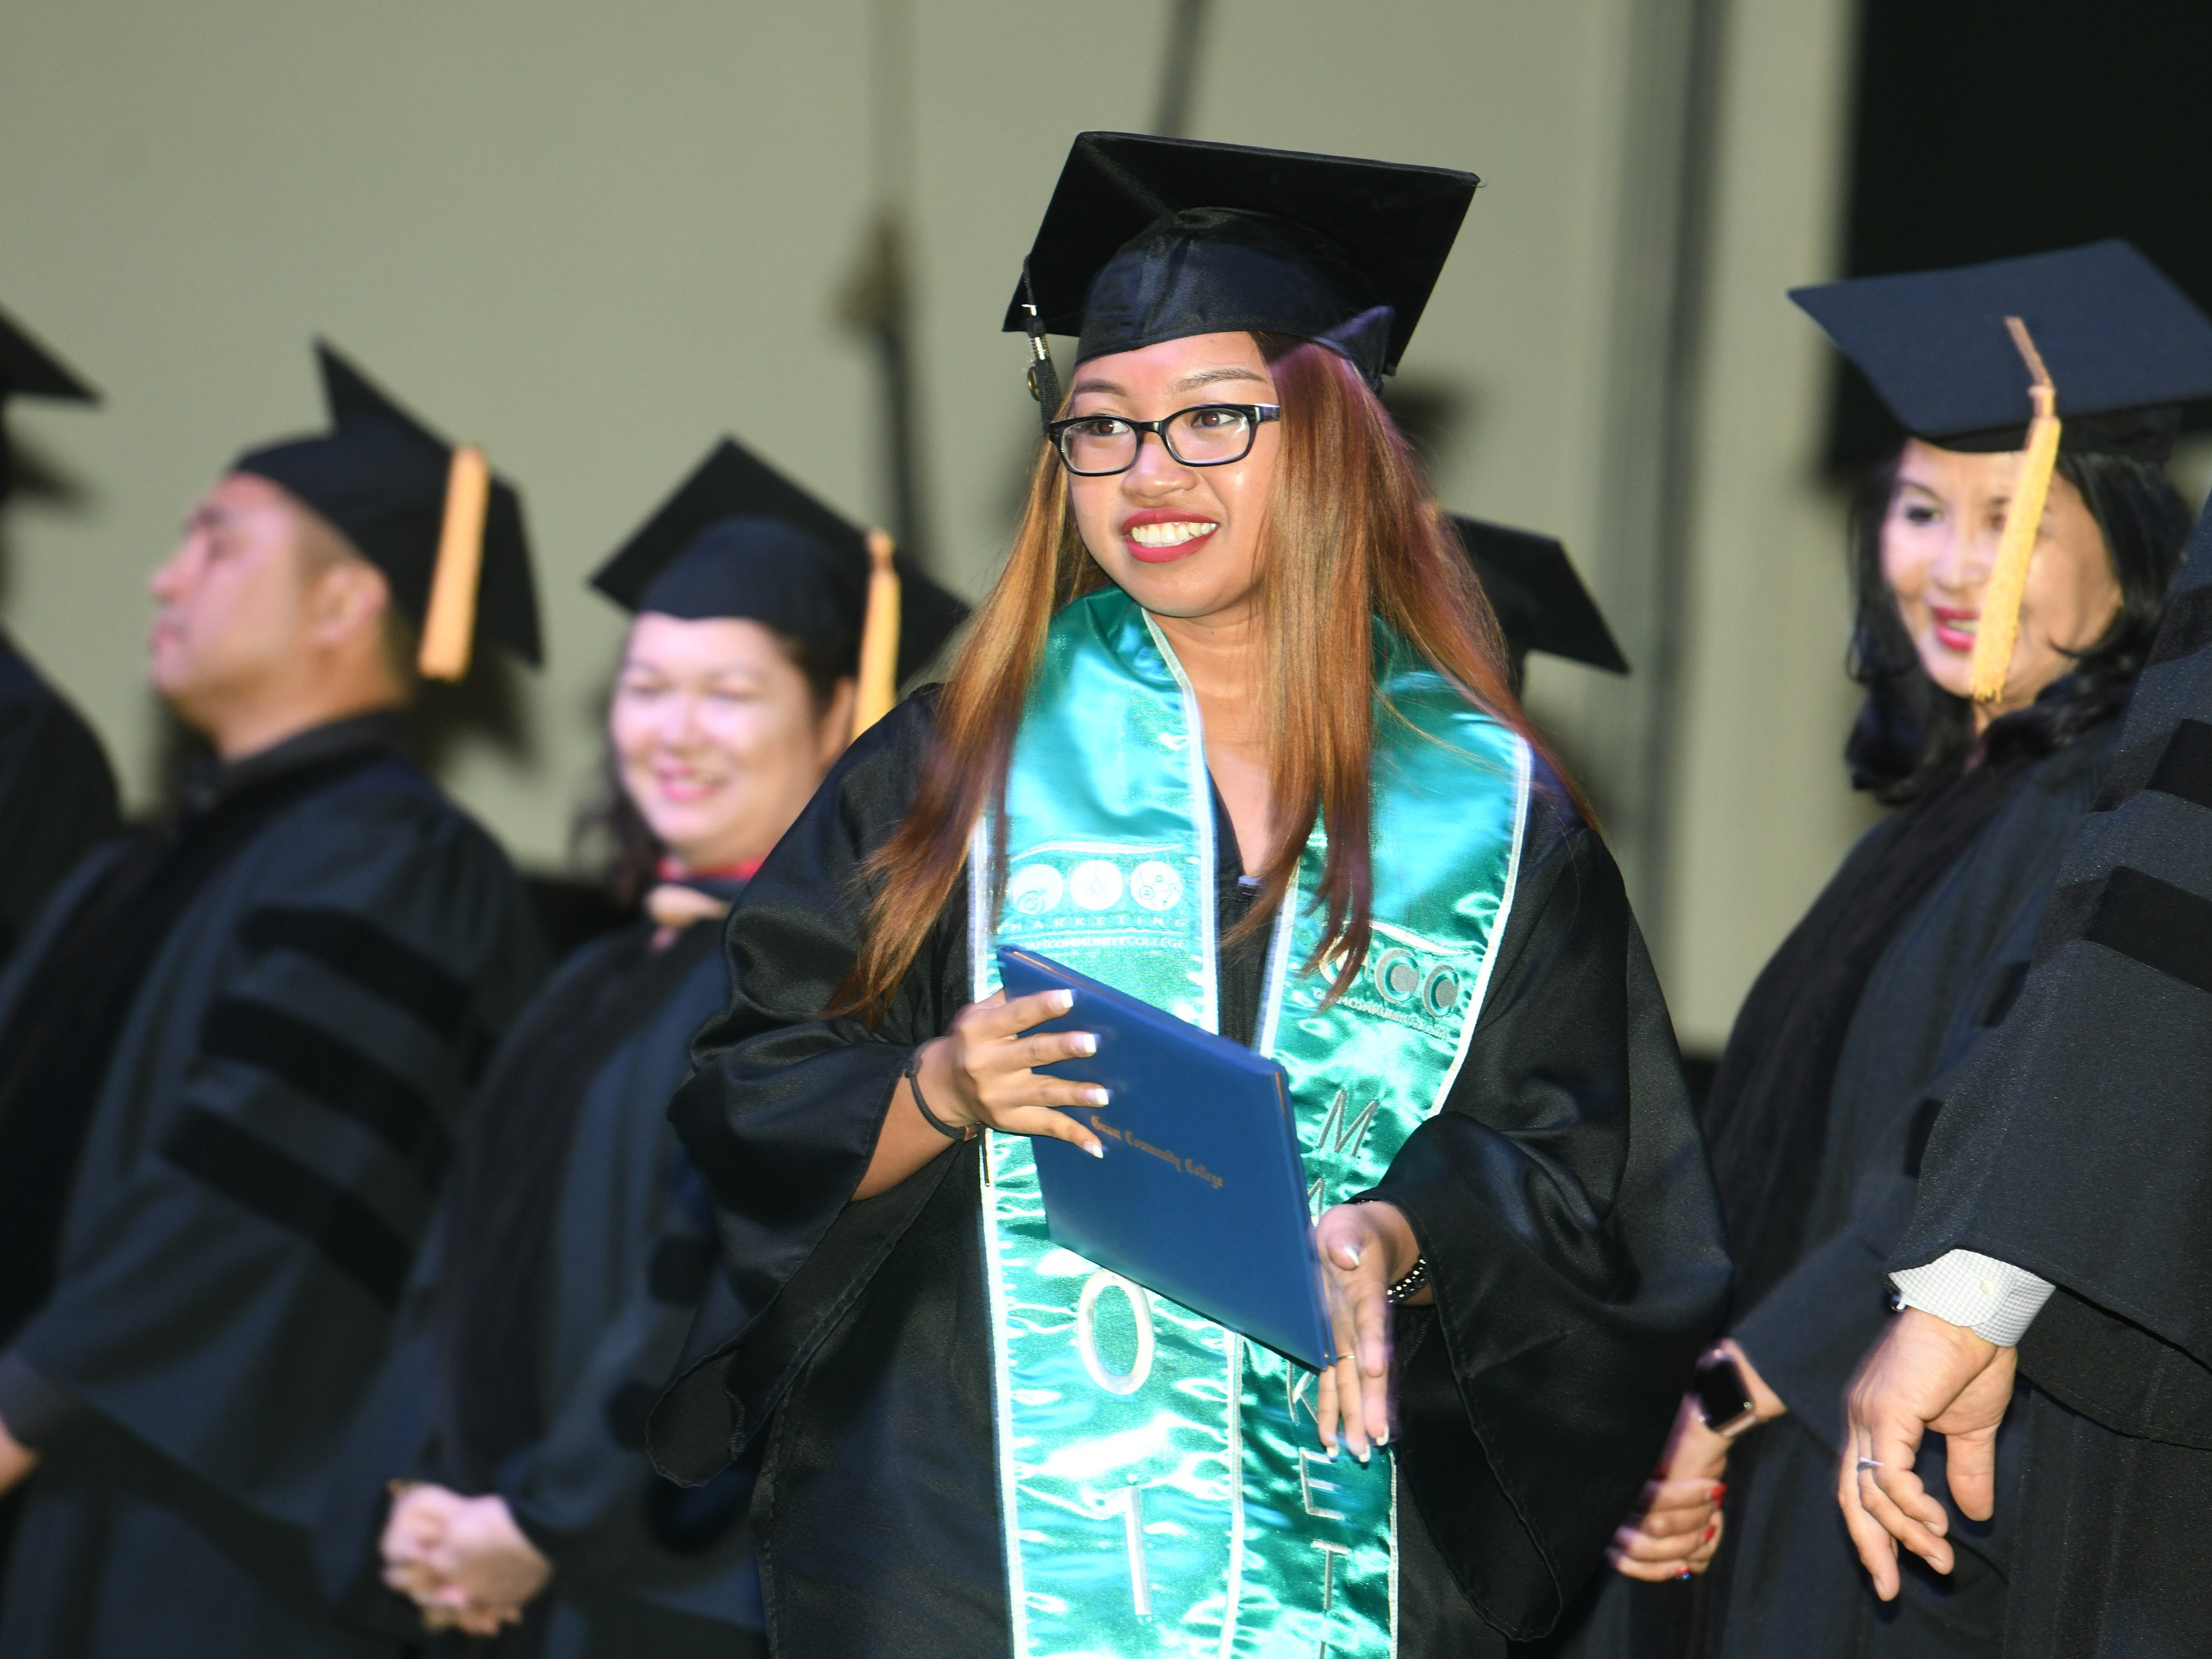 A graduate celebrates a little after receiving her certification or diploma during the Guam Community College's 2019 commencement exercise at the University of Guam in Mangilao on Friday, May 10, 2019. The college conferred a total of 435 degrees, certificates, and/or diplomas to 357 graduates at the event attended by hundreds of family members, friends and other well wishers.